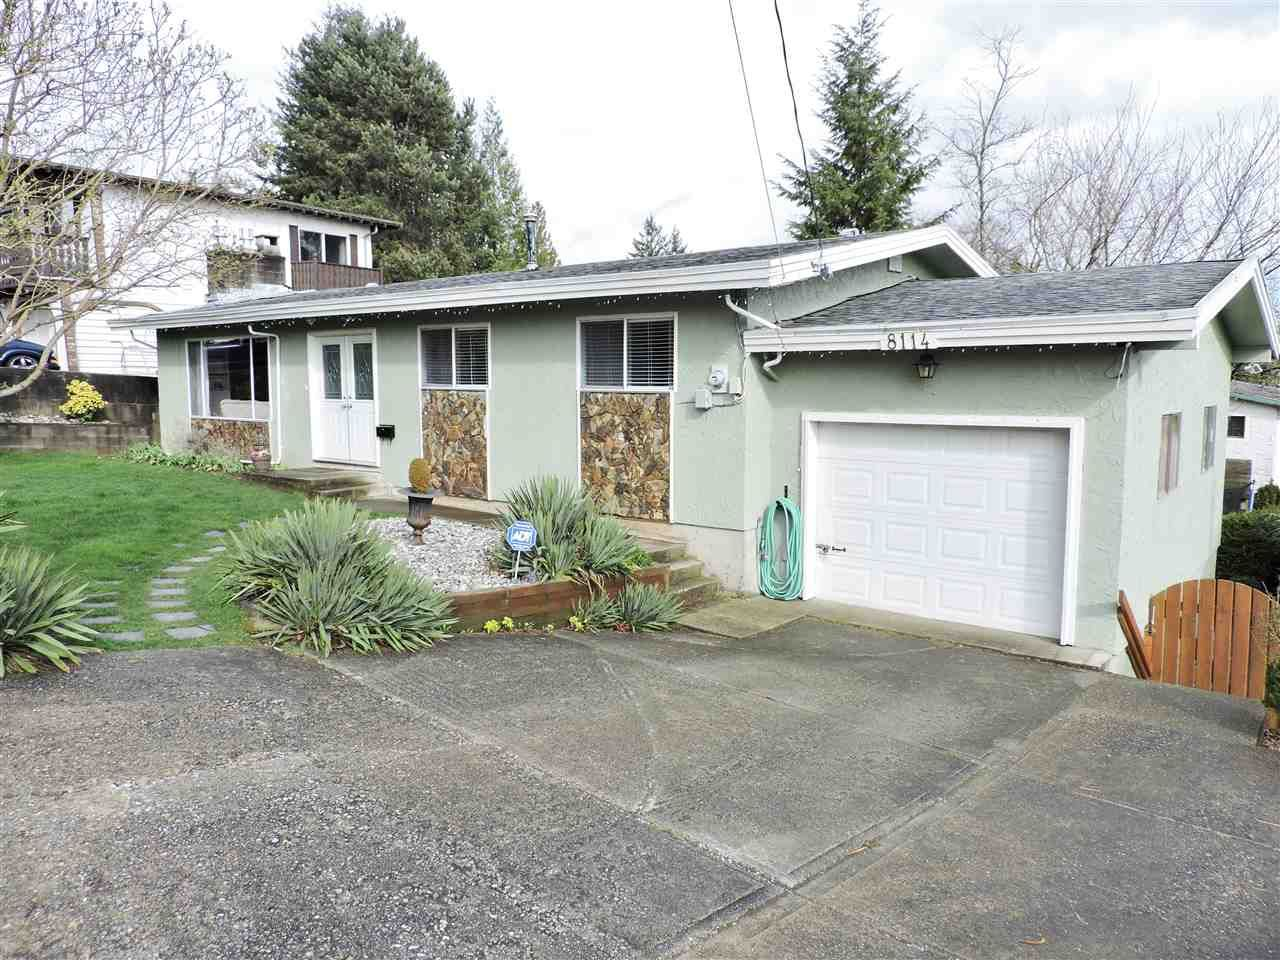 Main Photo: 8114 PHILBERT STREET in Mission: Mission BC House for sale : MLS®# R2042367